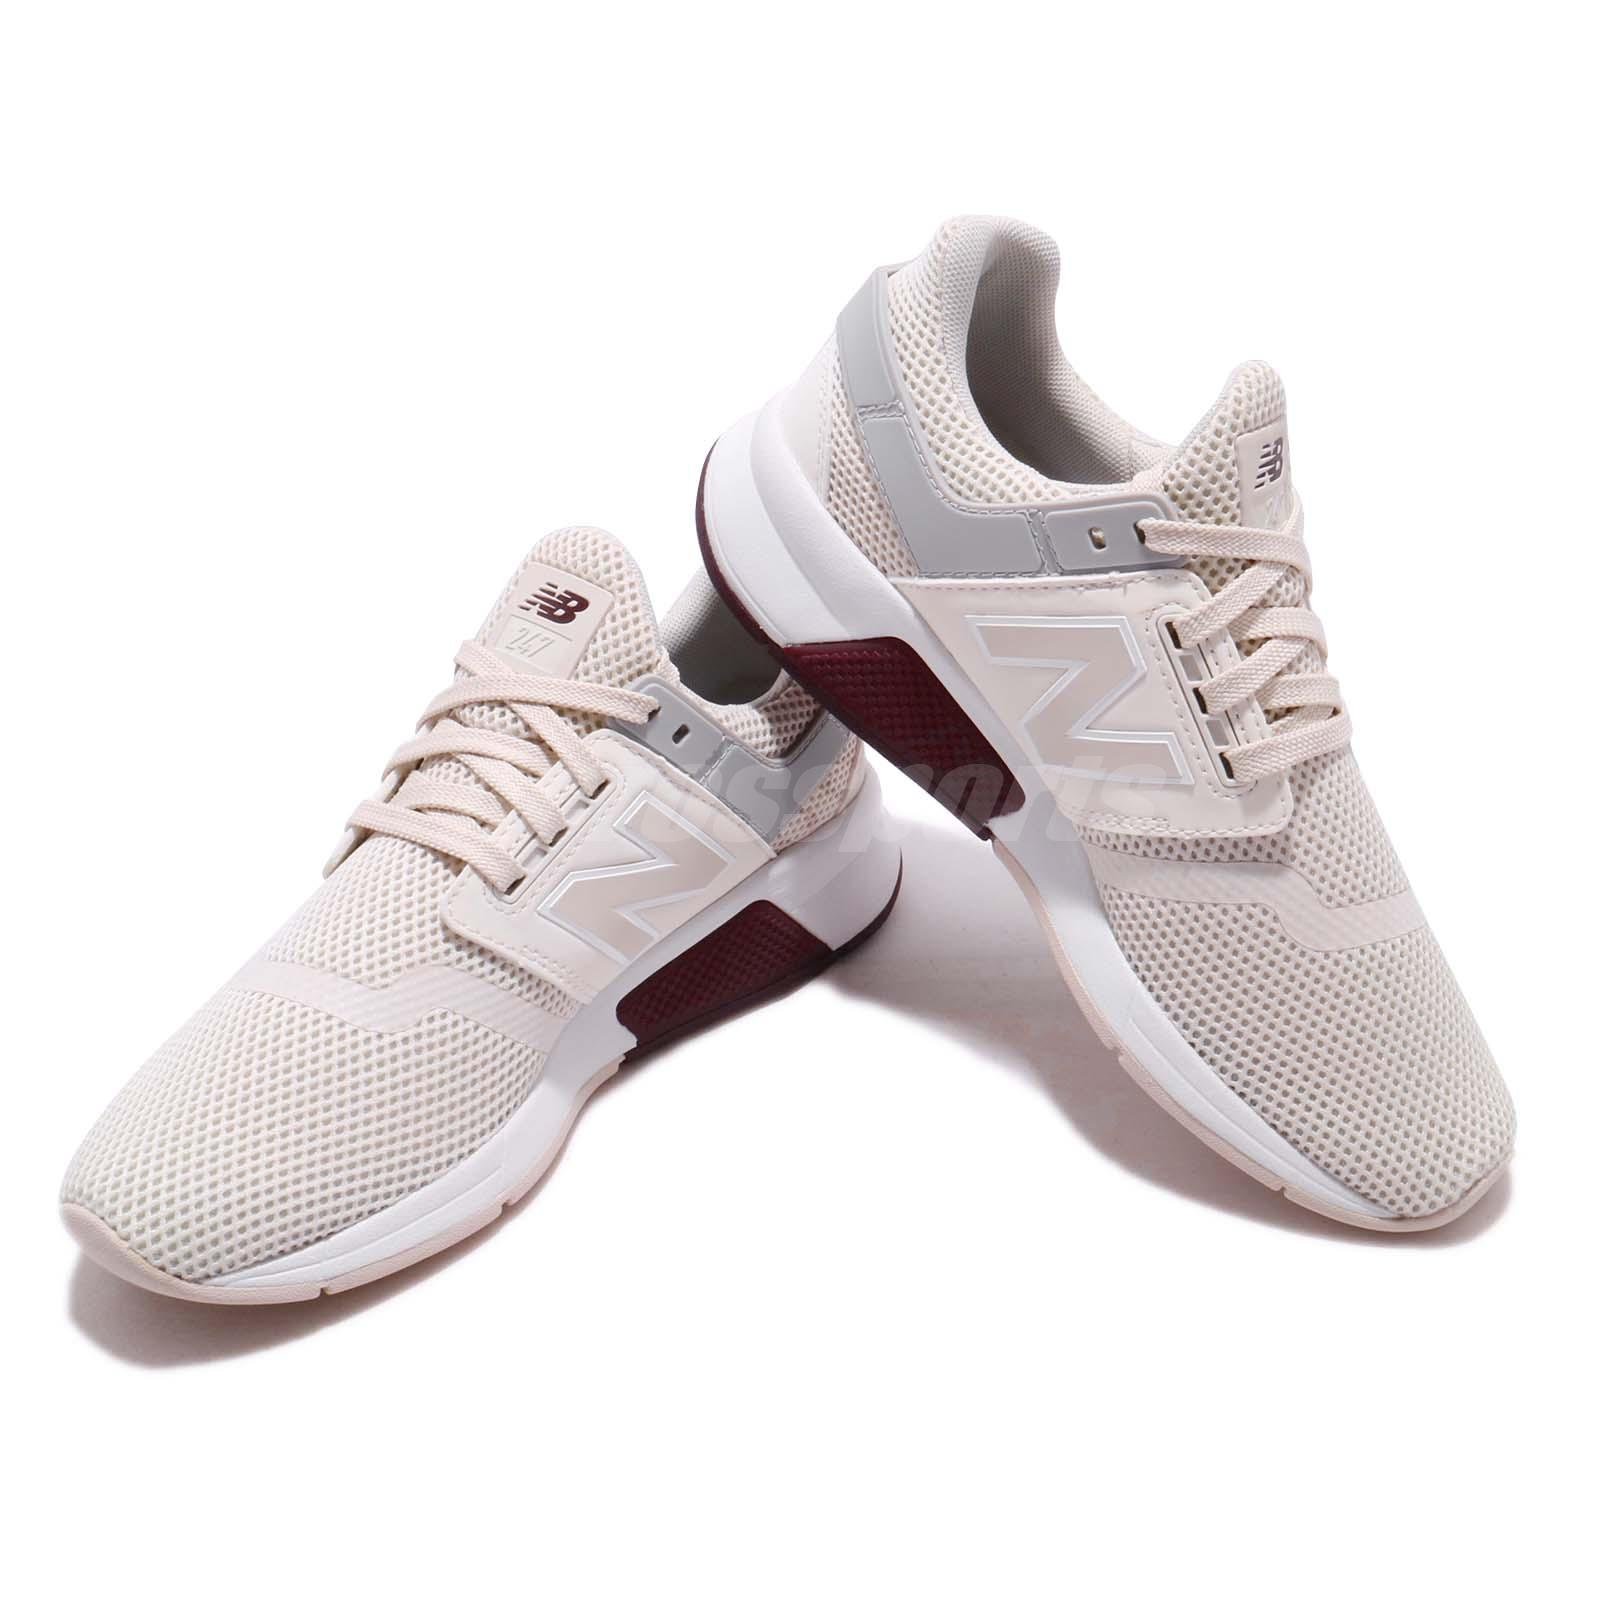 Details about New Balance WS247TRE B Ivory White Grey Women Running Shoes Sneakers WS247TREB